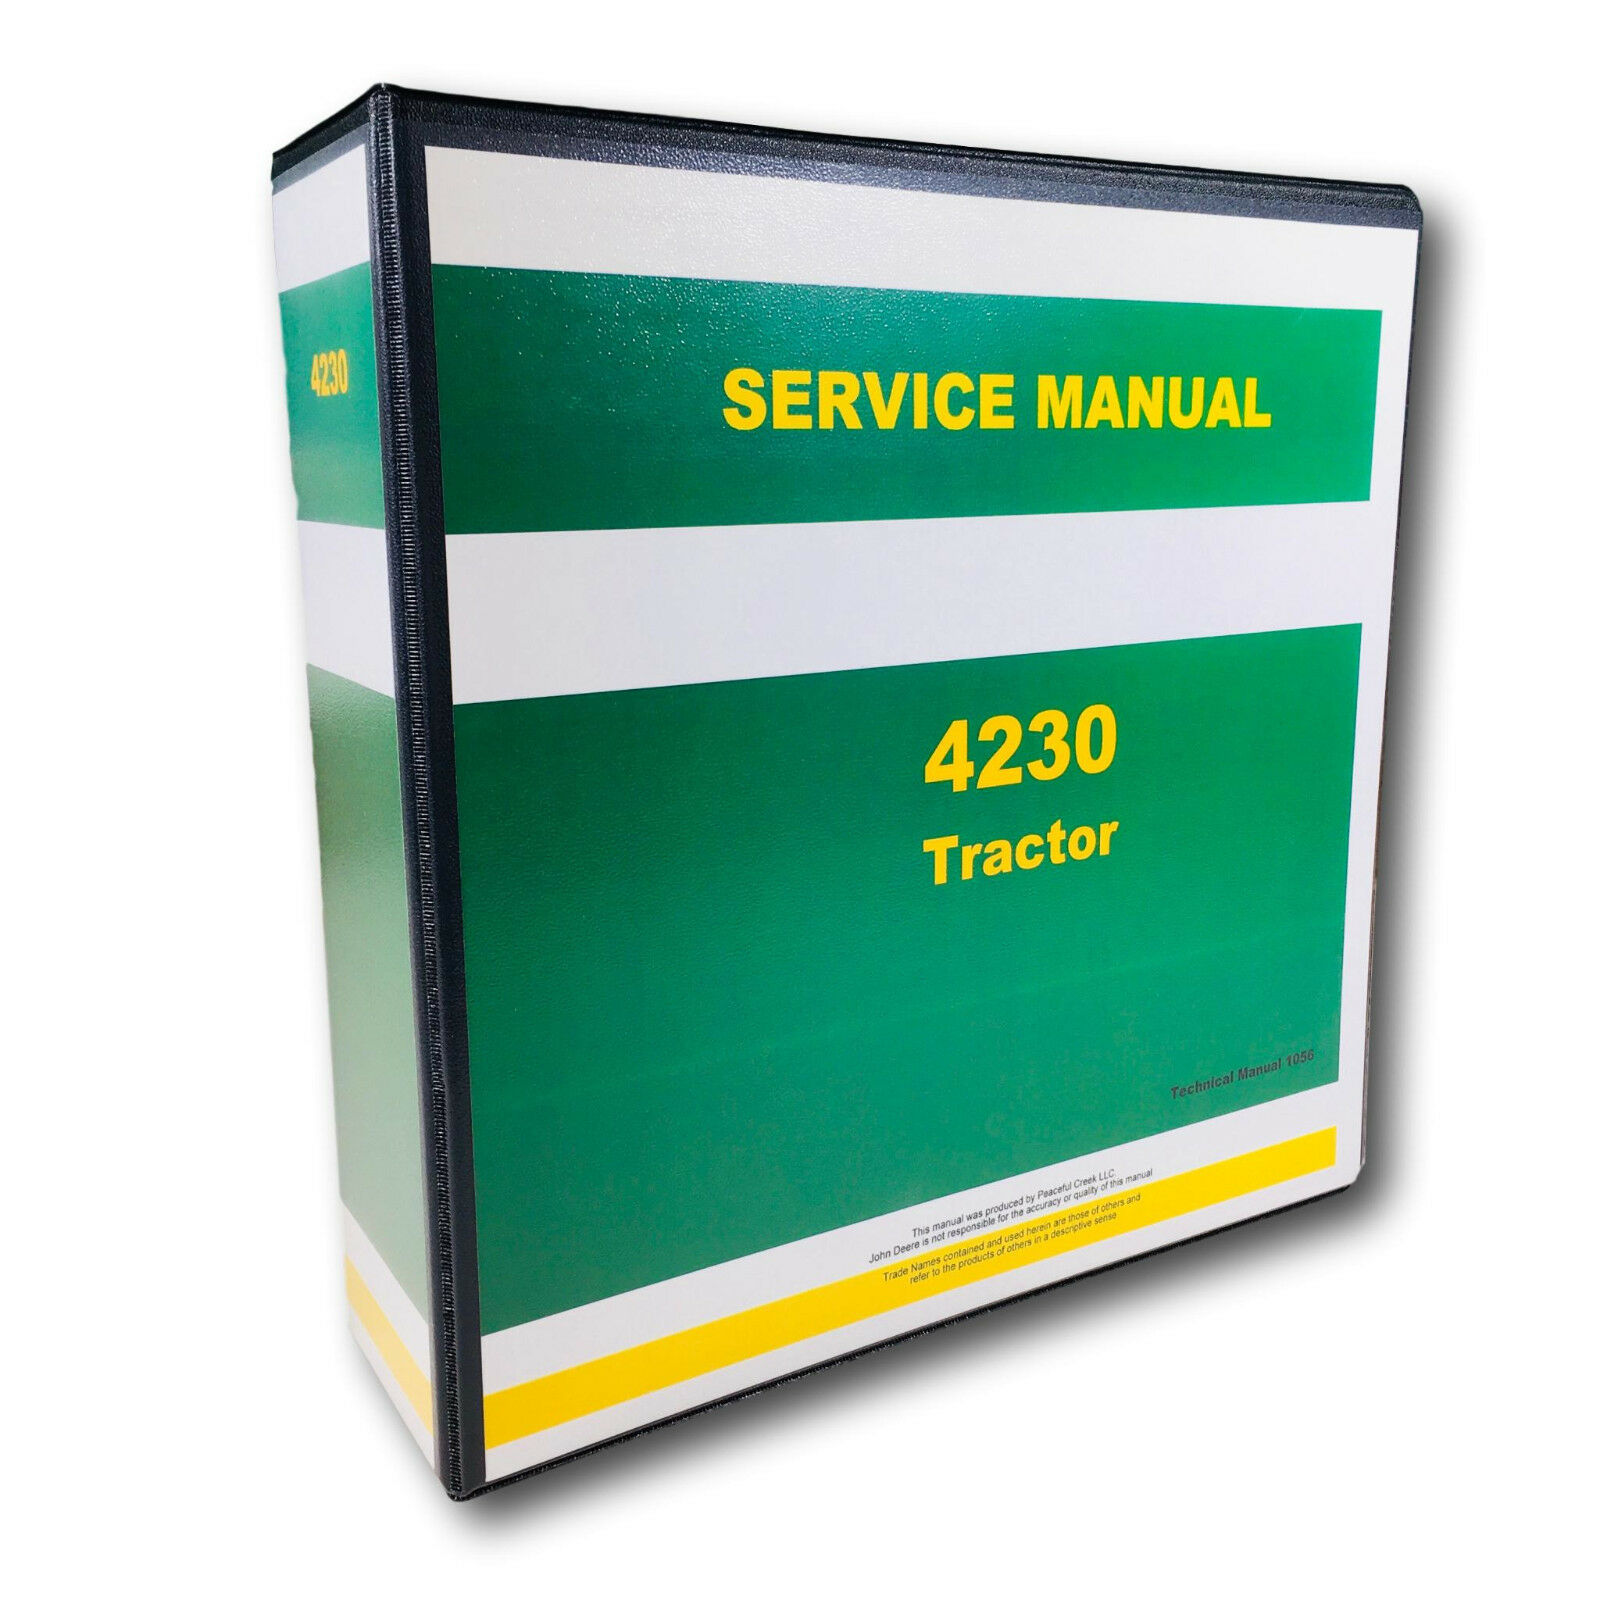 Service Manual For John Deere 4230 Tractor Technical Repair Shop. Plete Servicerepairoverhaul Manual. John Deere. John Deere 4230 Parts Diagram Air Conditioning At Scoala.co